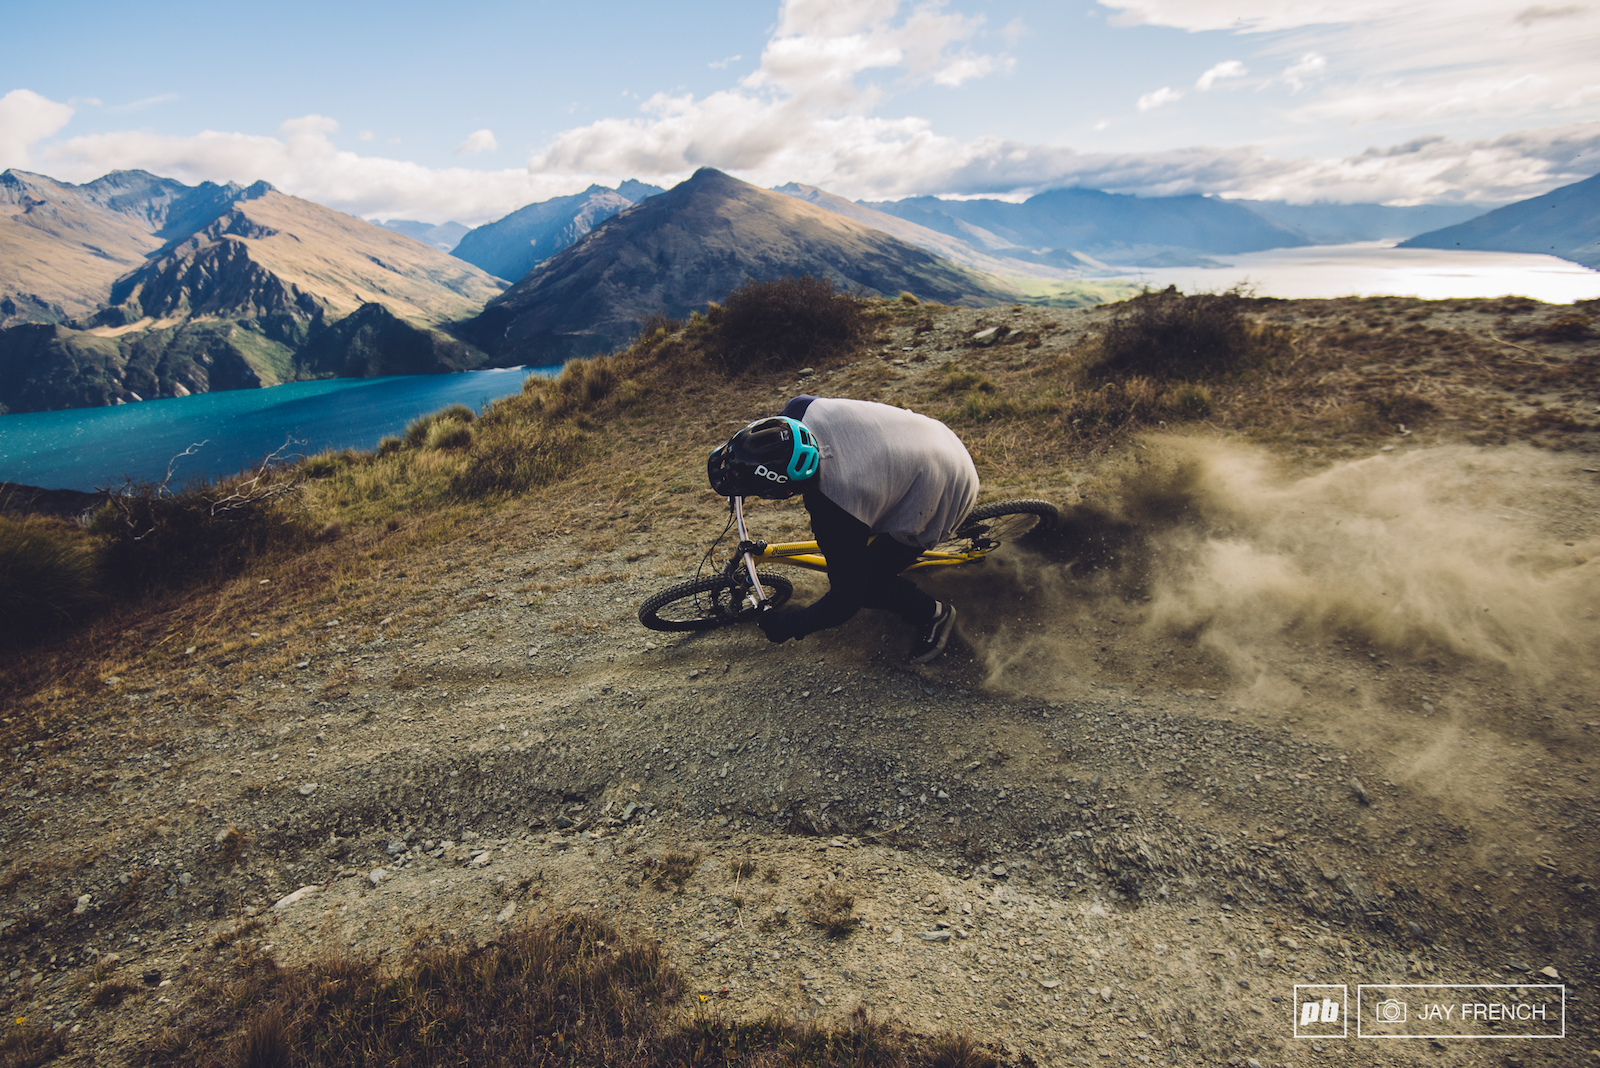 Elmo works on his drift multiplier with Lake Wanaka as a backdrop.